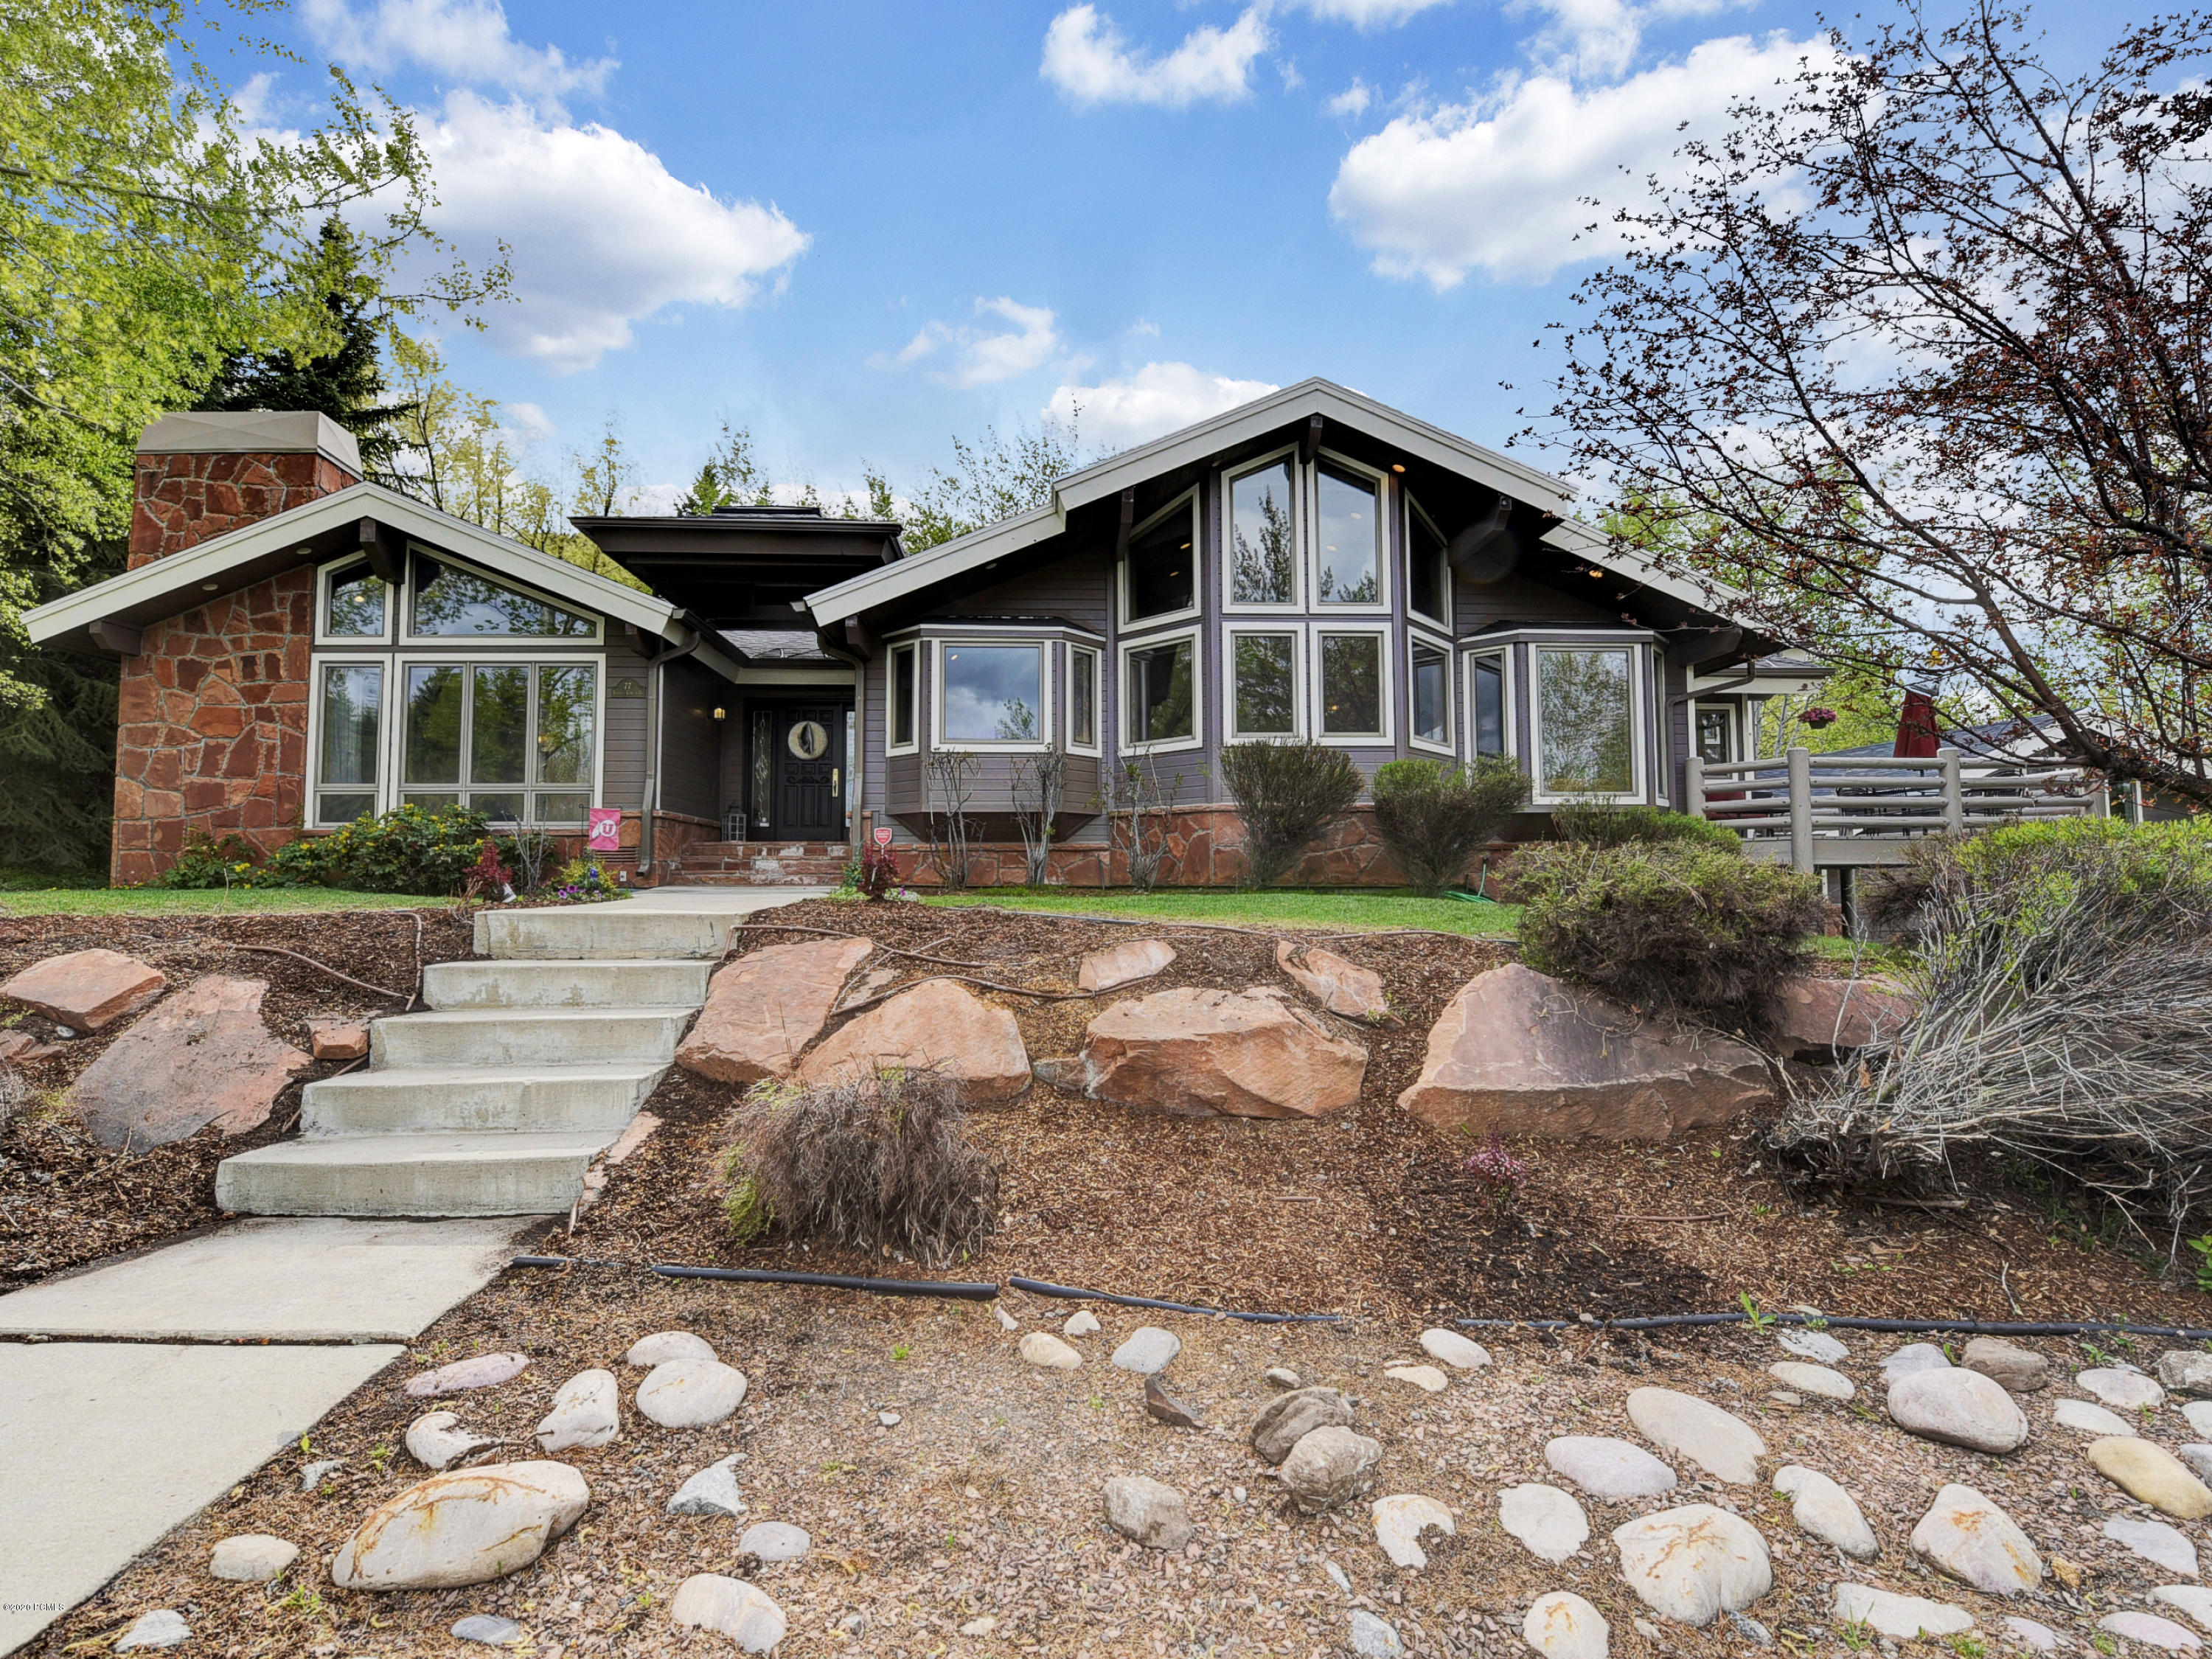 77 Thaynes Canyon Drive, Park City, Utah 84060, 6 Bedrooms Bedrooms, ,7 BathroomsBathrooms,Single Family,For Sale,Thaynes Canyon,20190109112430415765000000